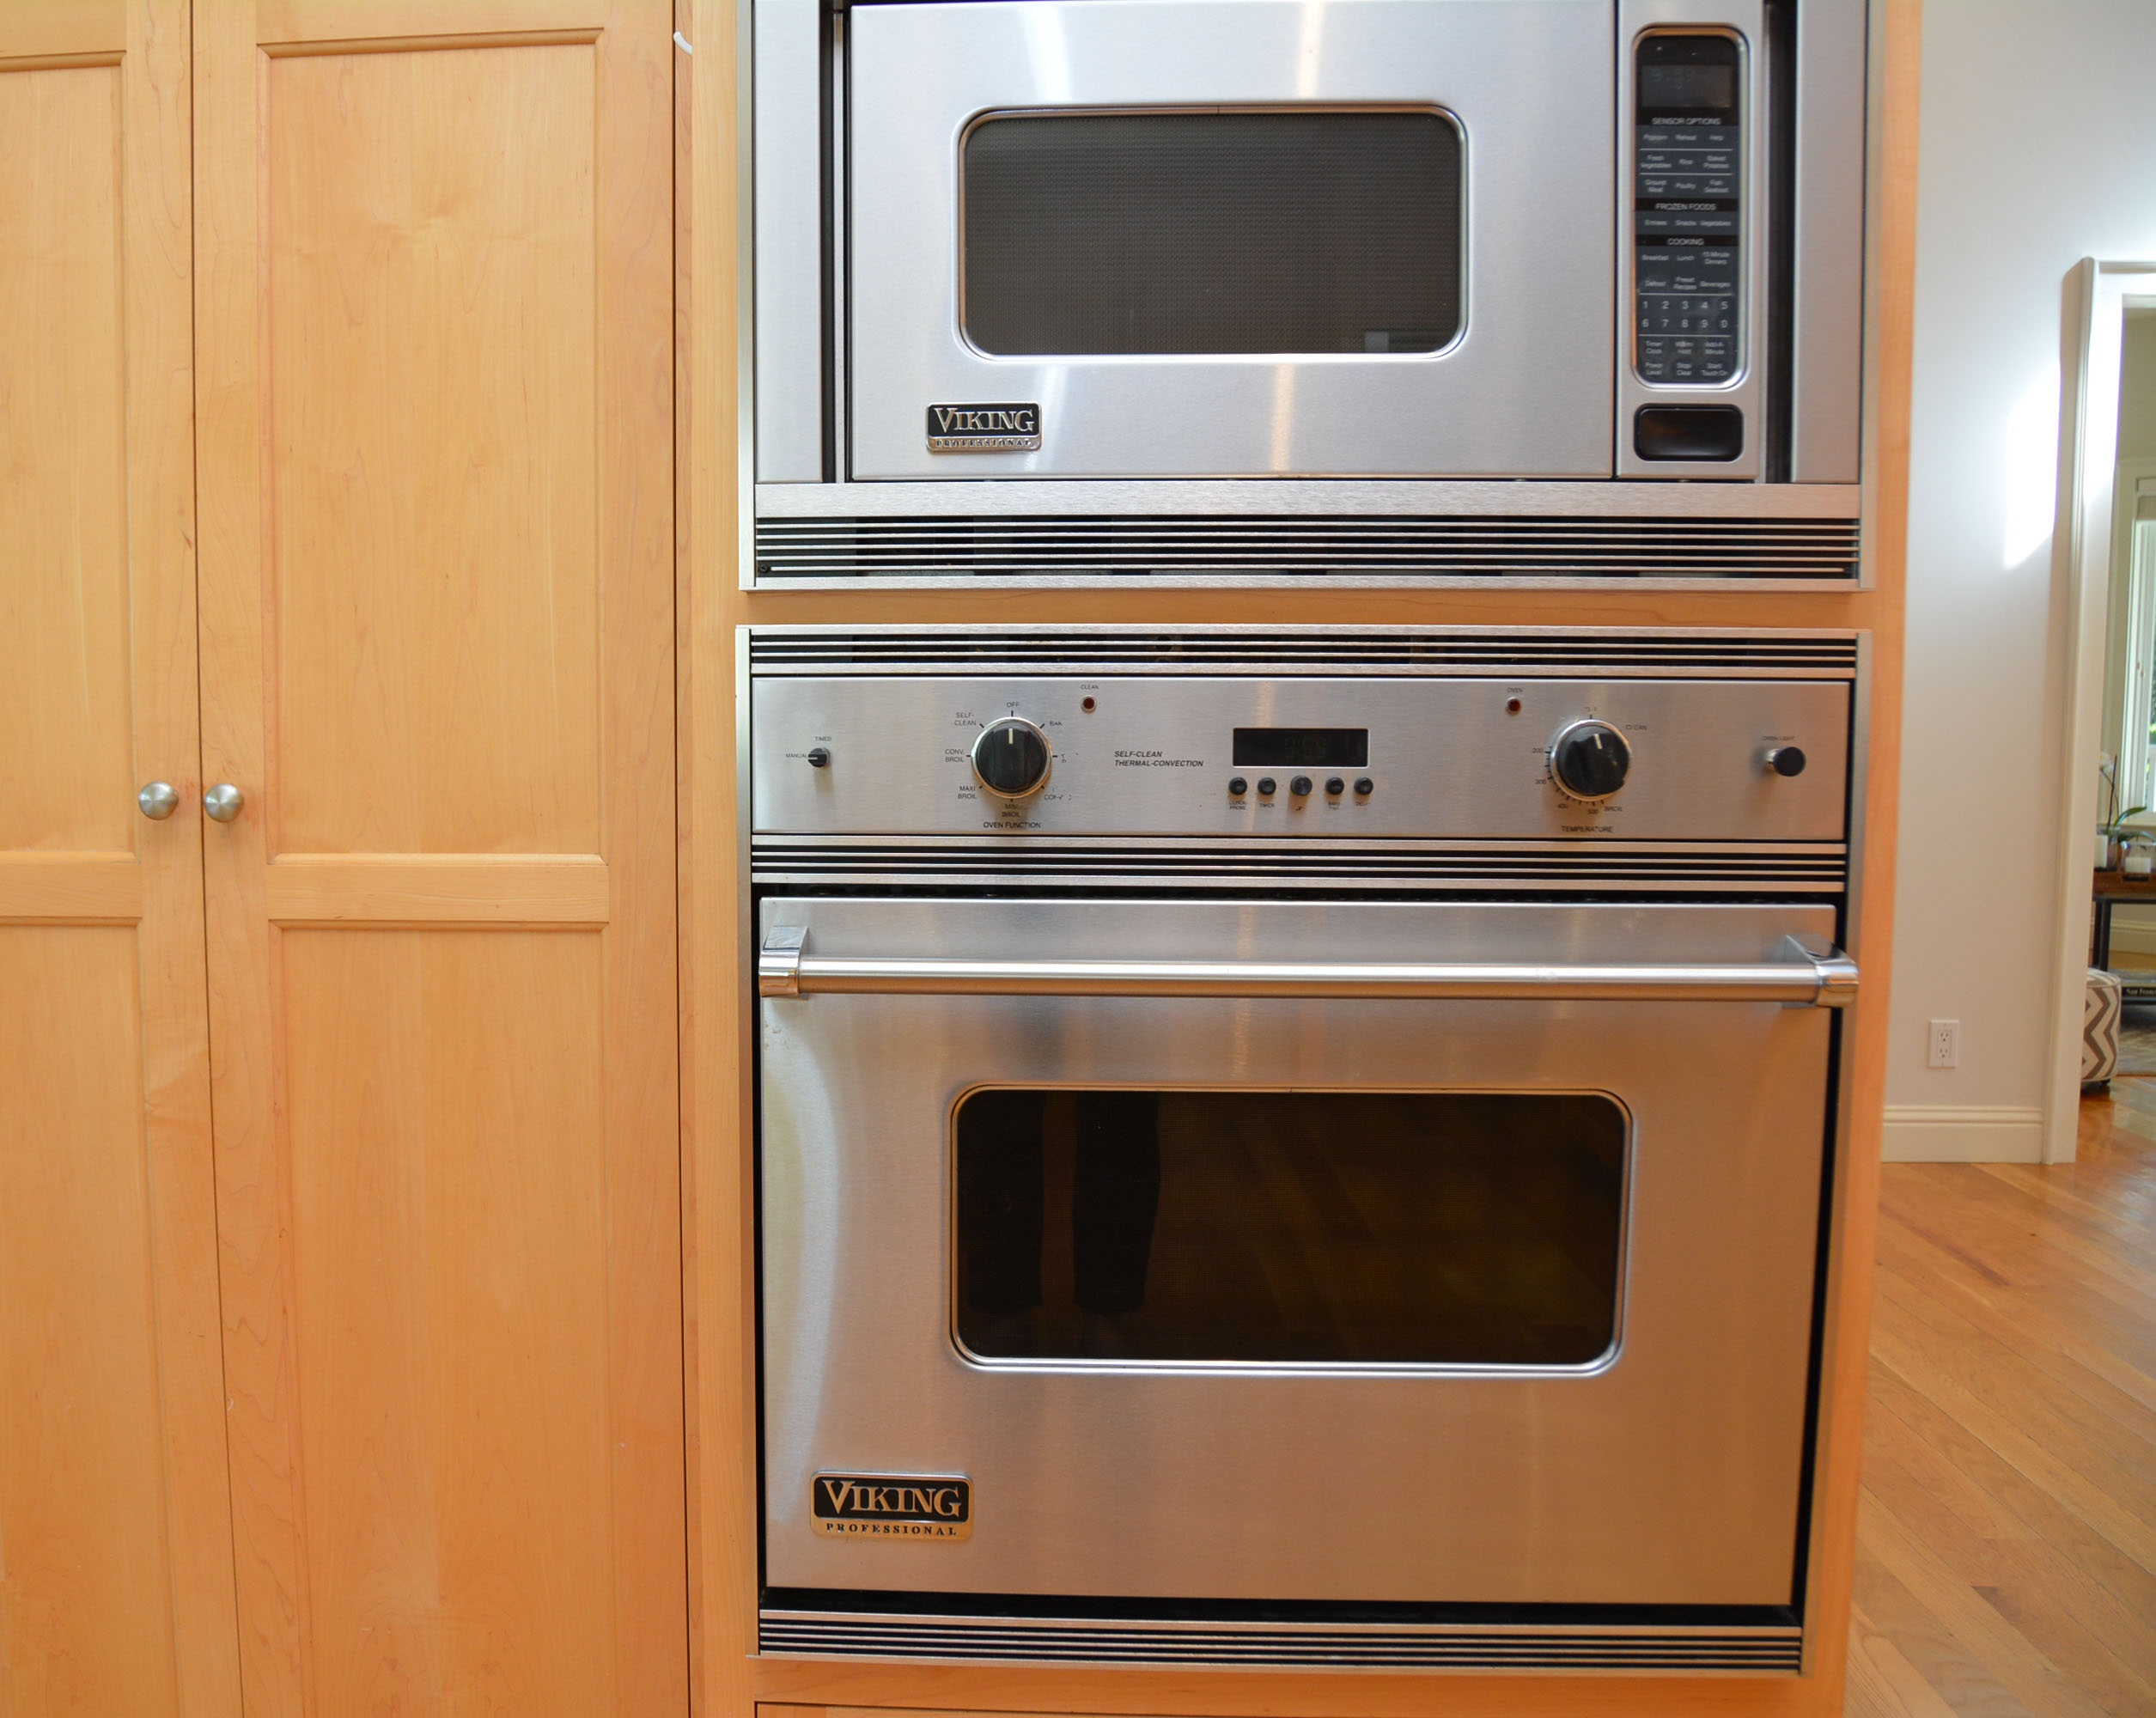 oven convection design cuisinart kitchen broiler amazon com custom dining home toaster tob classic viking excellent